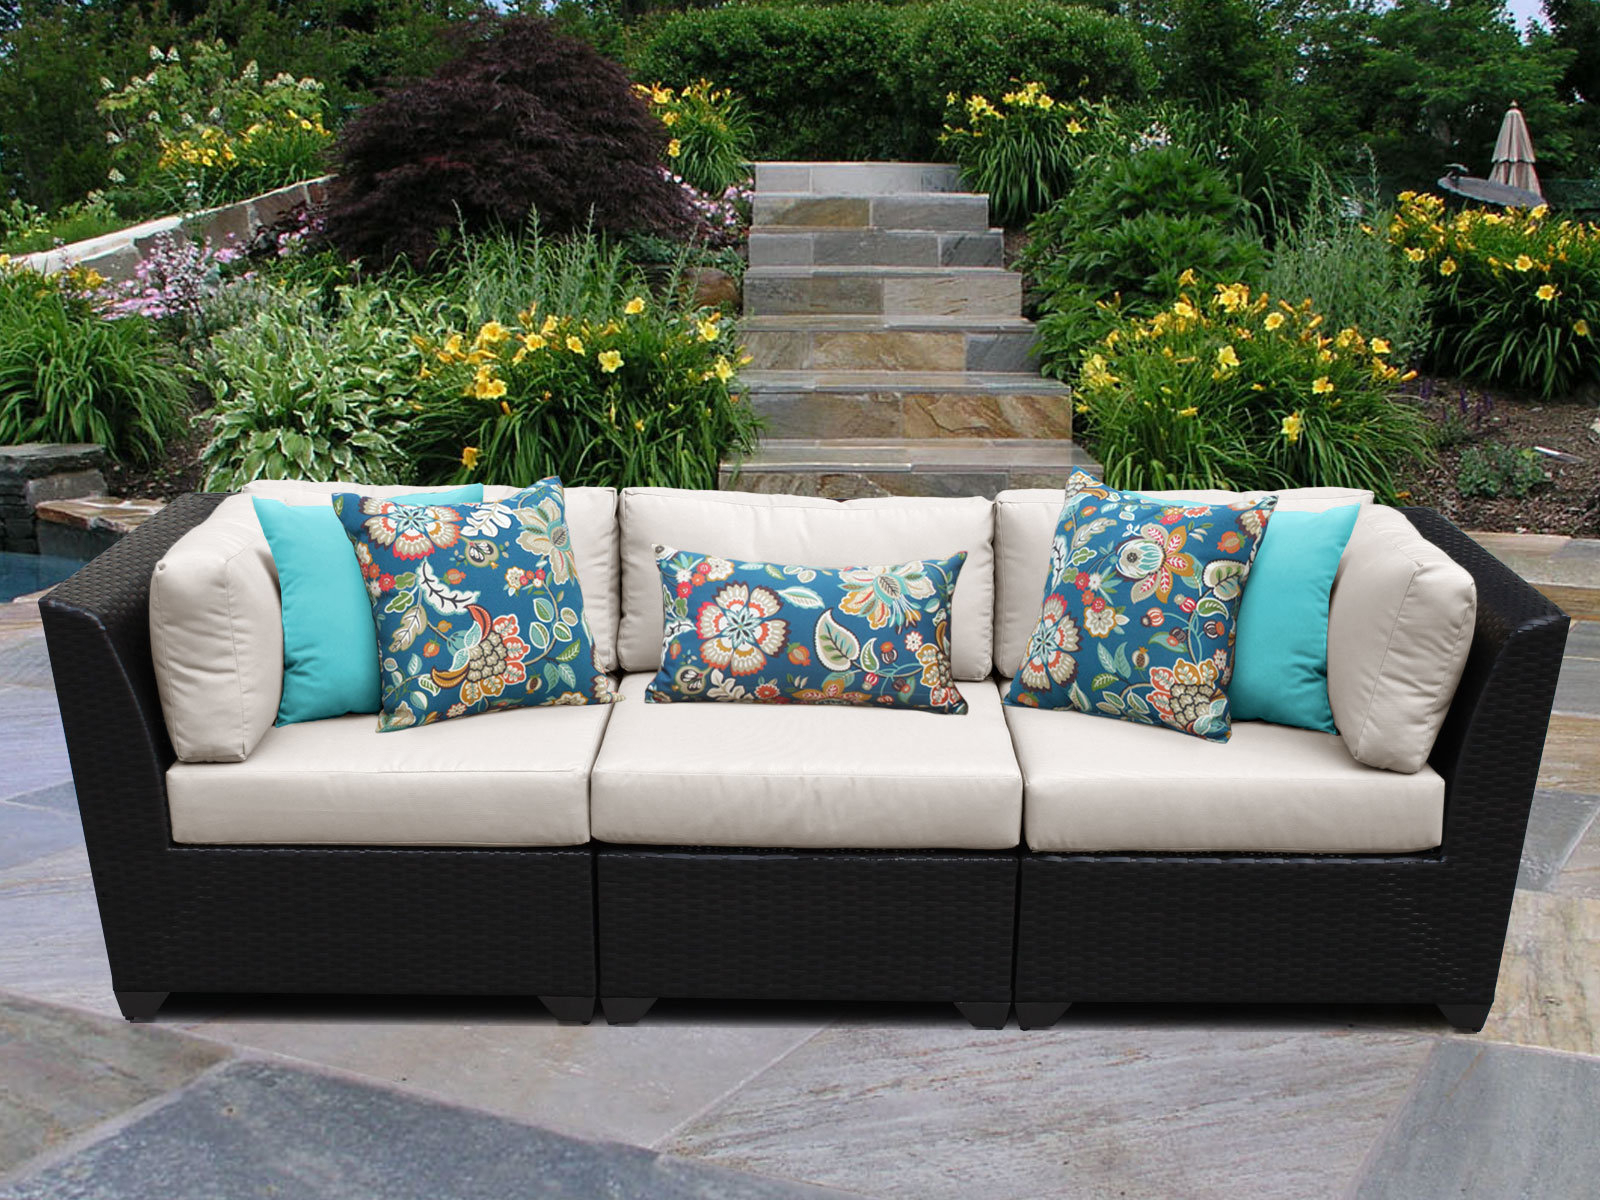 Most Recently Released Camak Patio Sofa With Cushions Pertaining To Newbury Patio Sofas With Cushions (View 10 of 20)